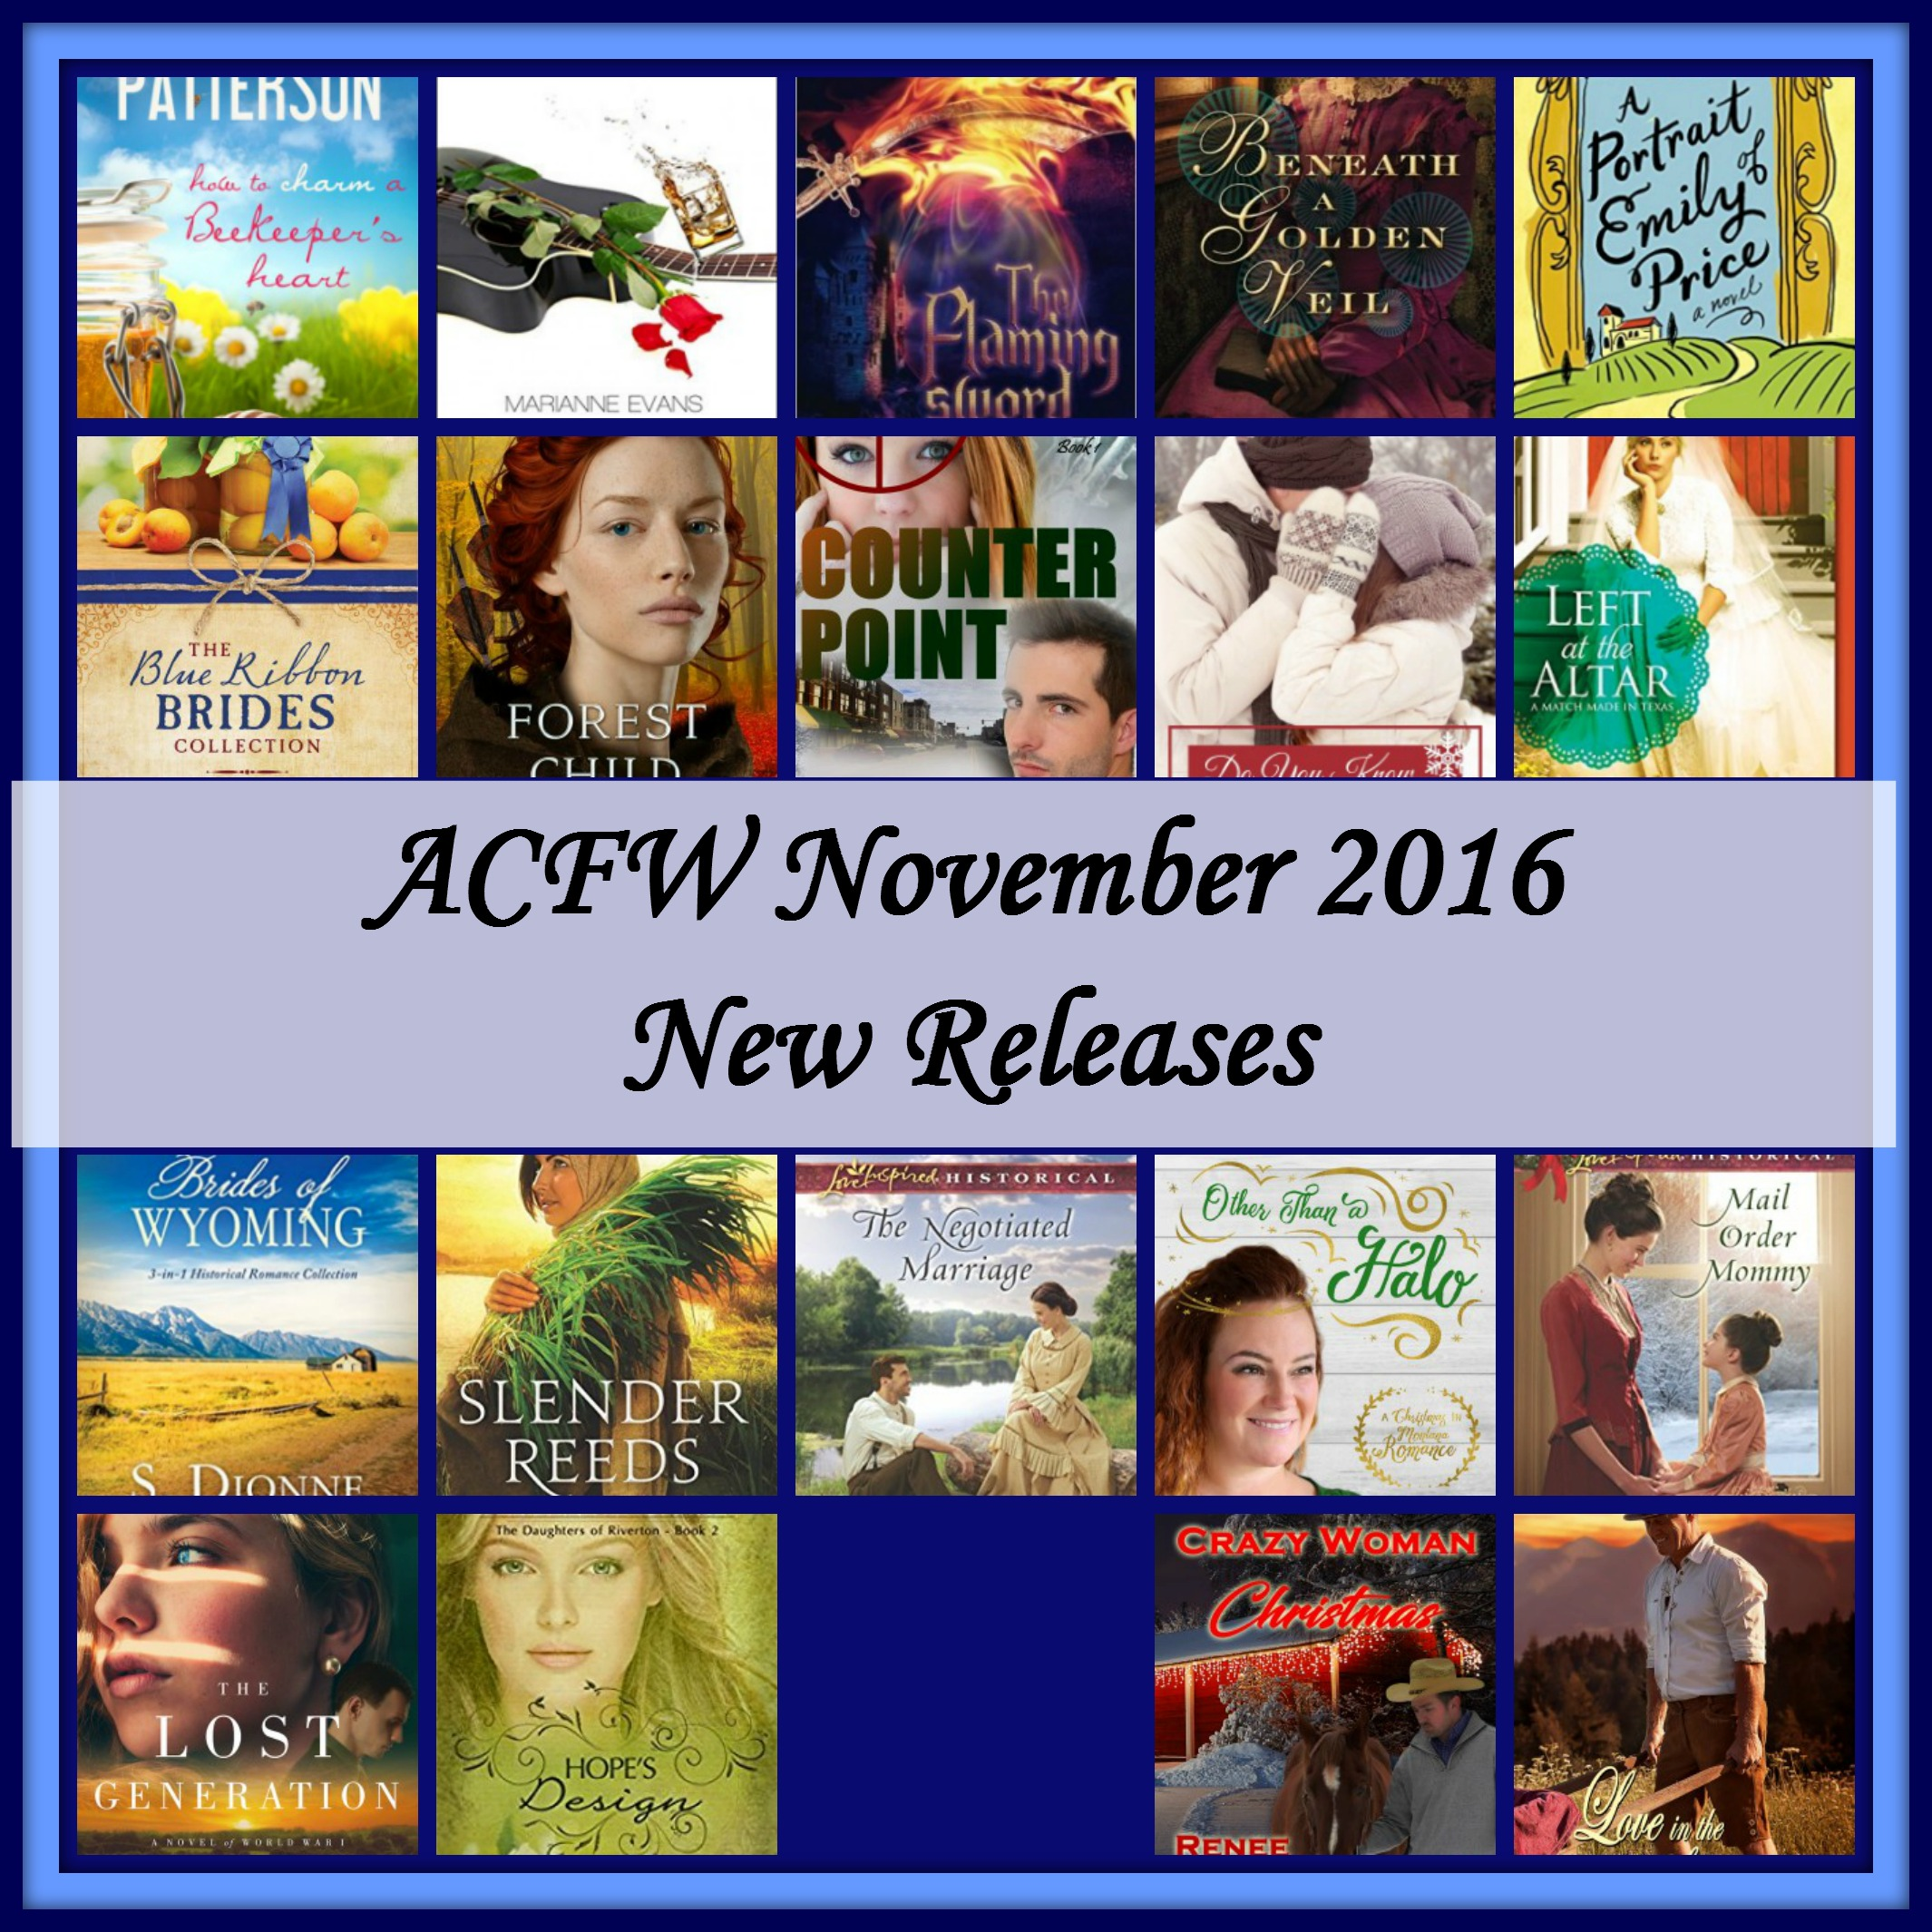 November 2016 New Releases from ACFW authors